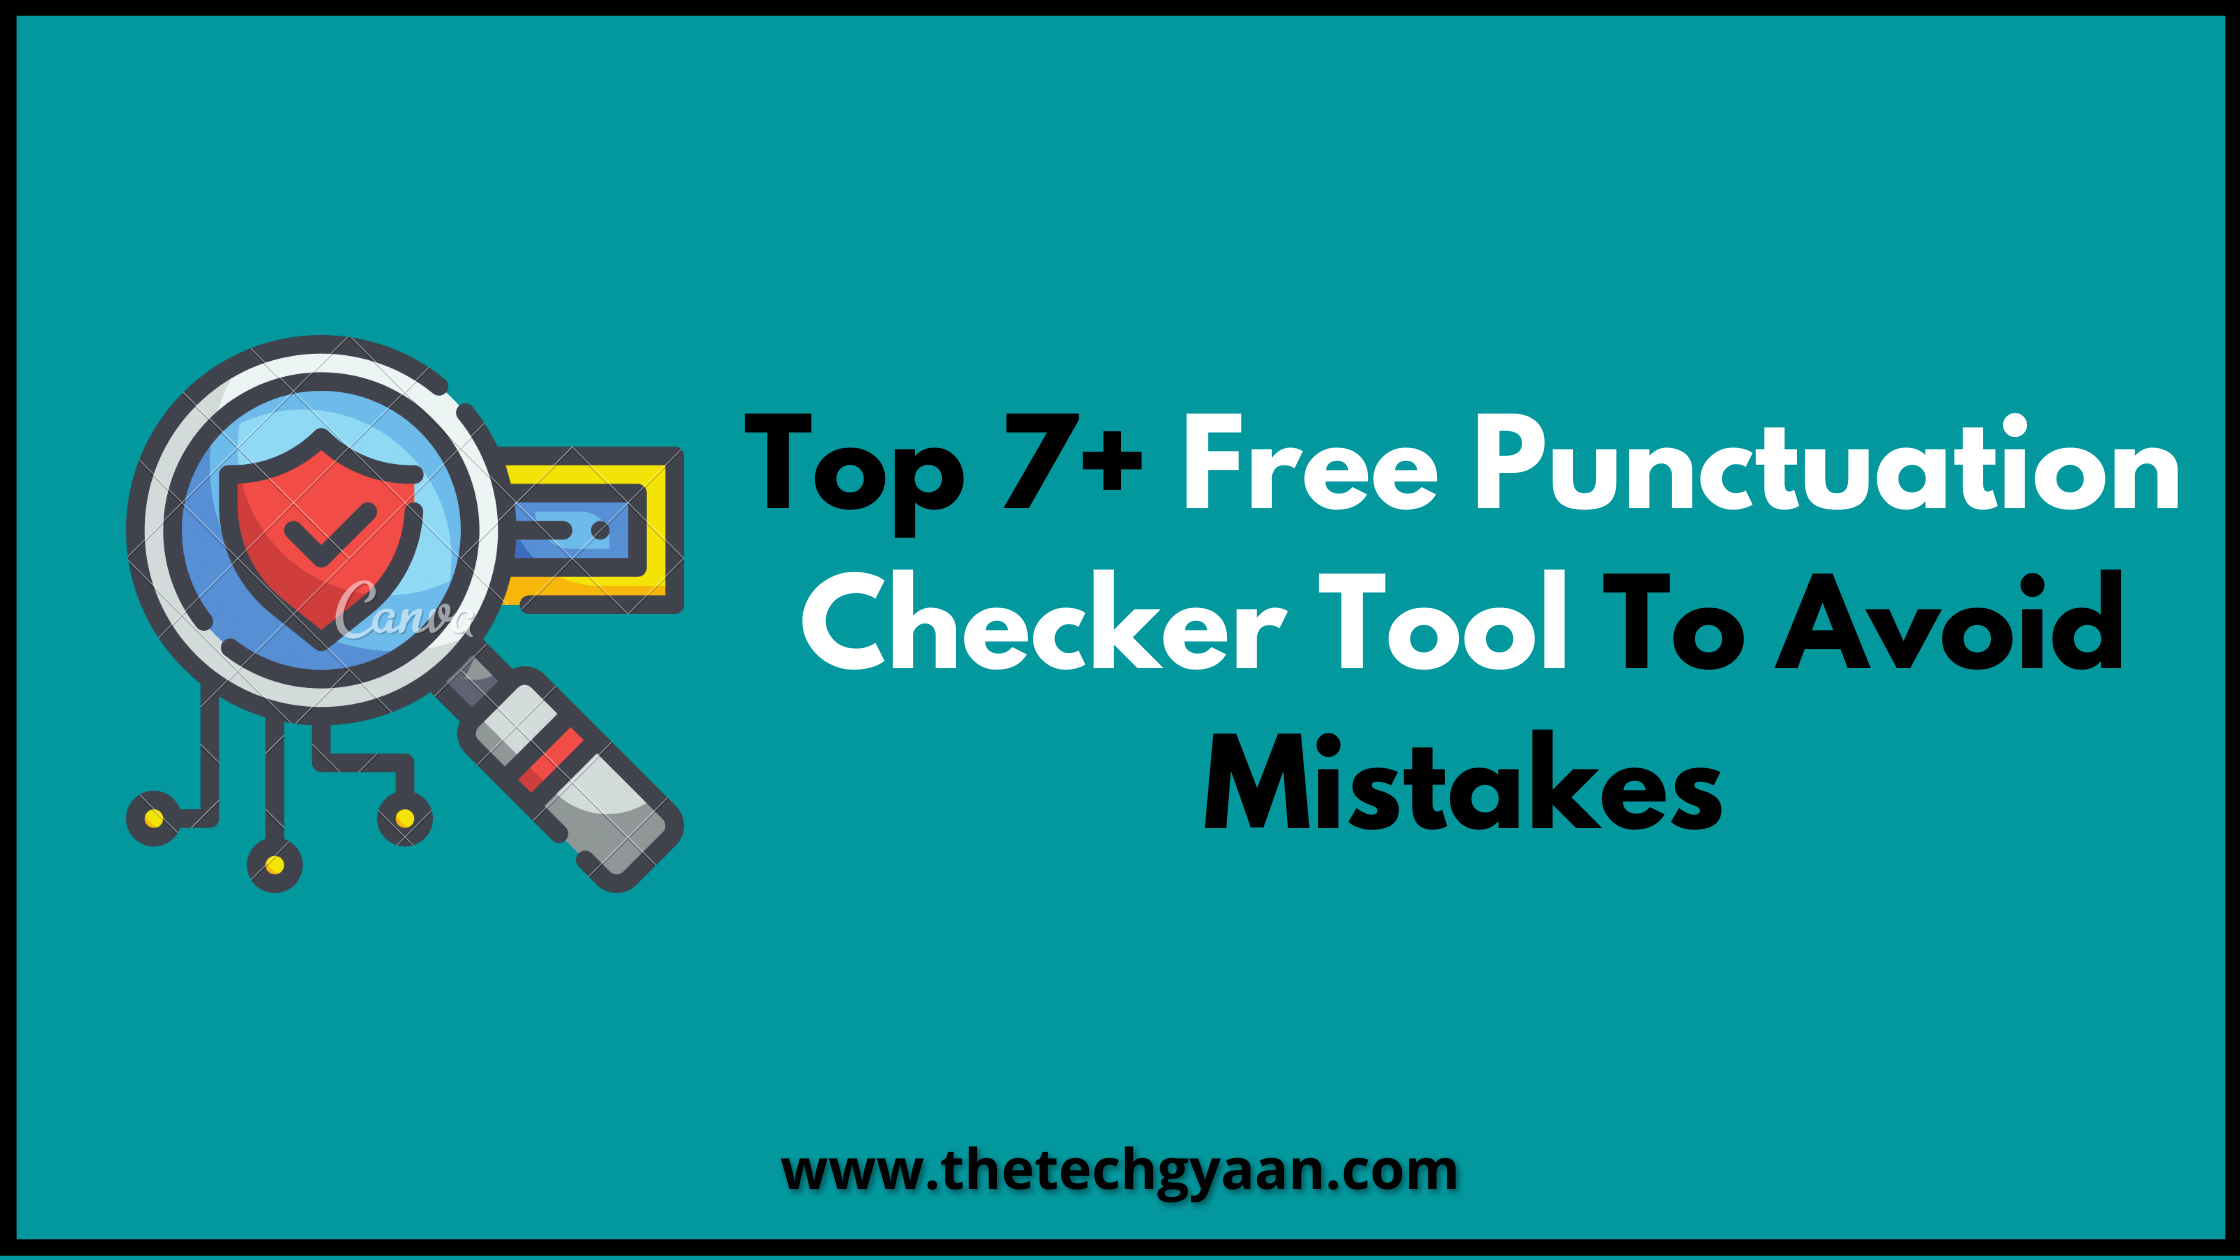 Top 7+ Free Punctuation Checker Tool To Avoid Mistakes